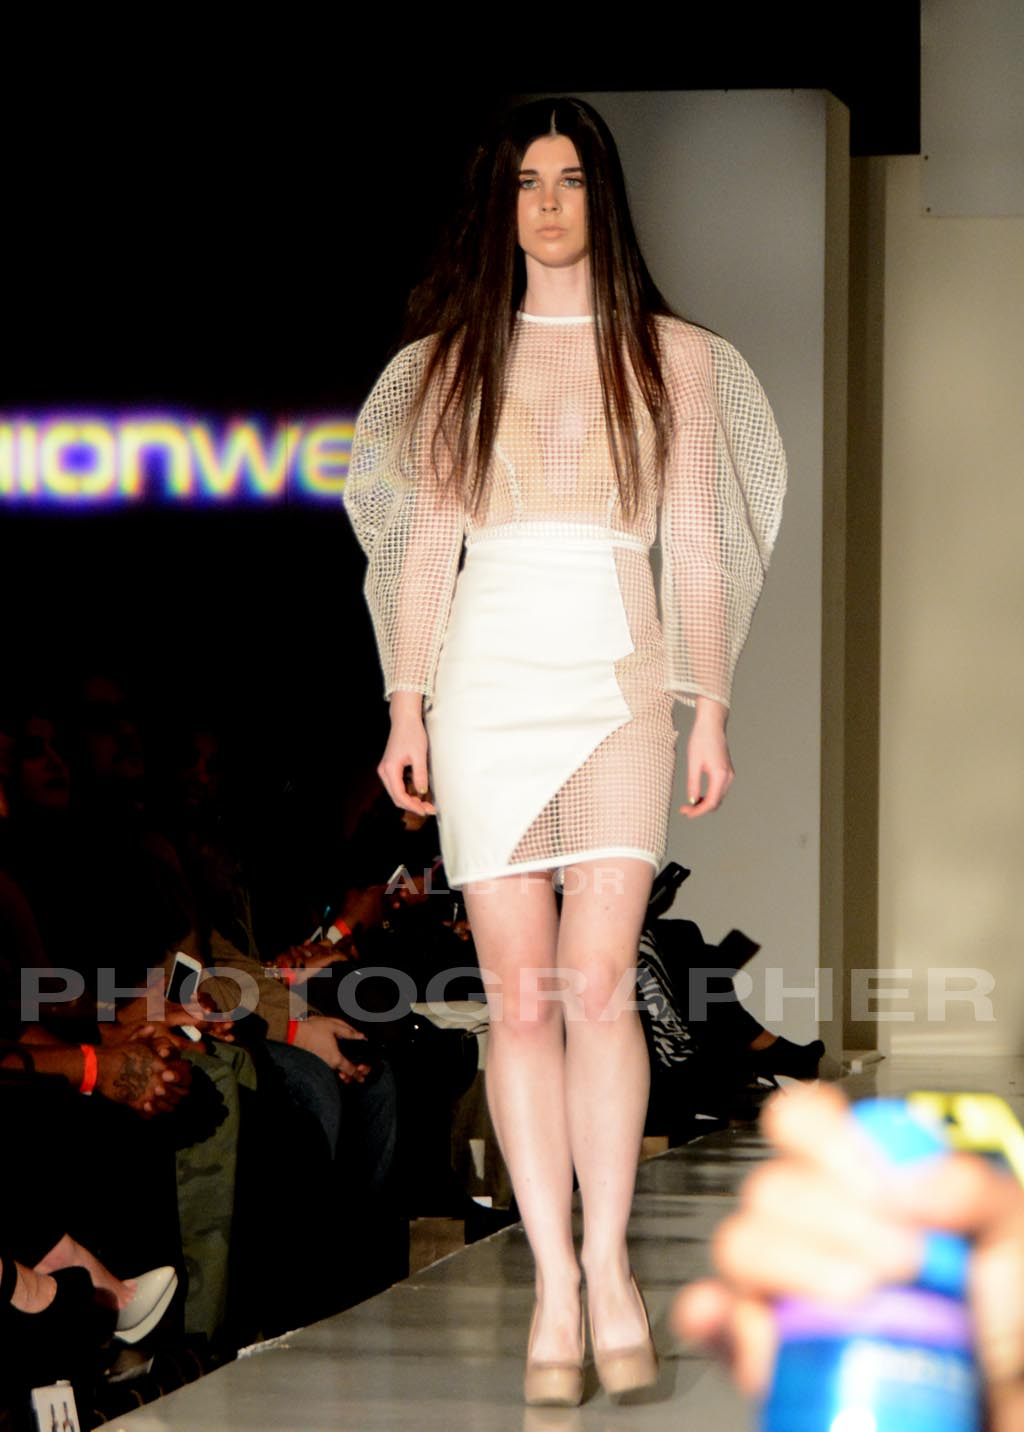 Feb 21, 2014 Ready to Wear Runway Show @ the Crane Arts Building